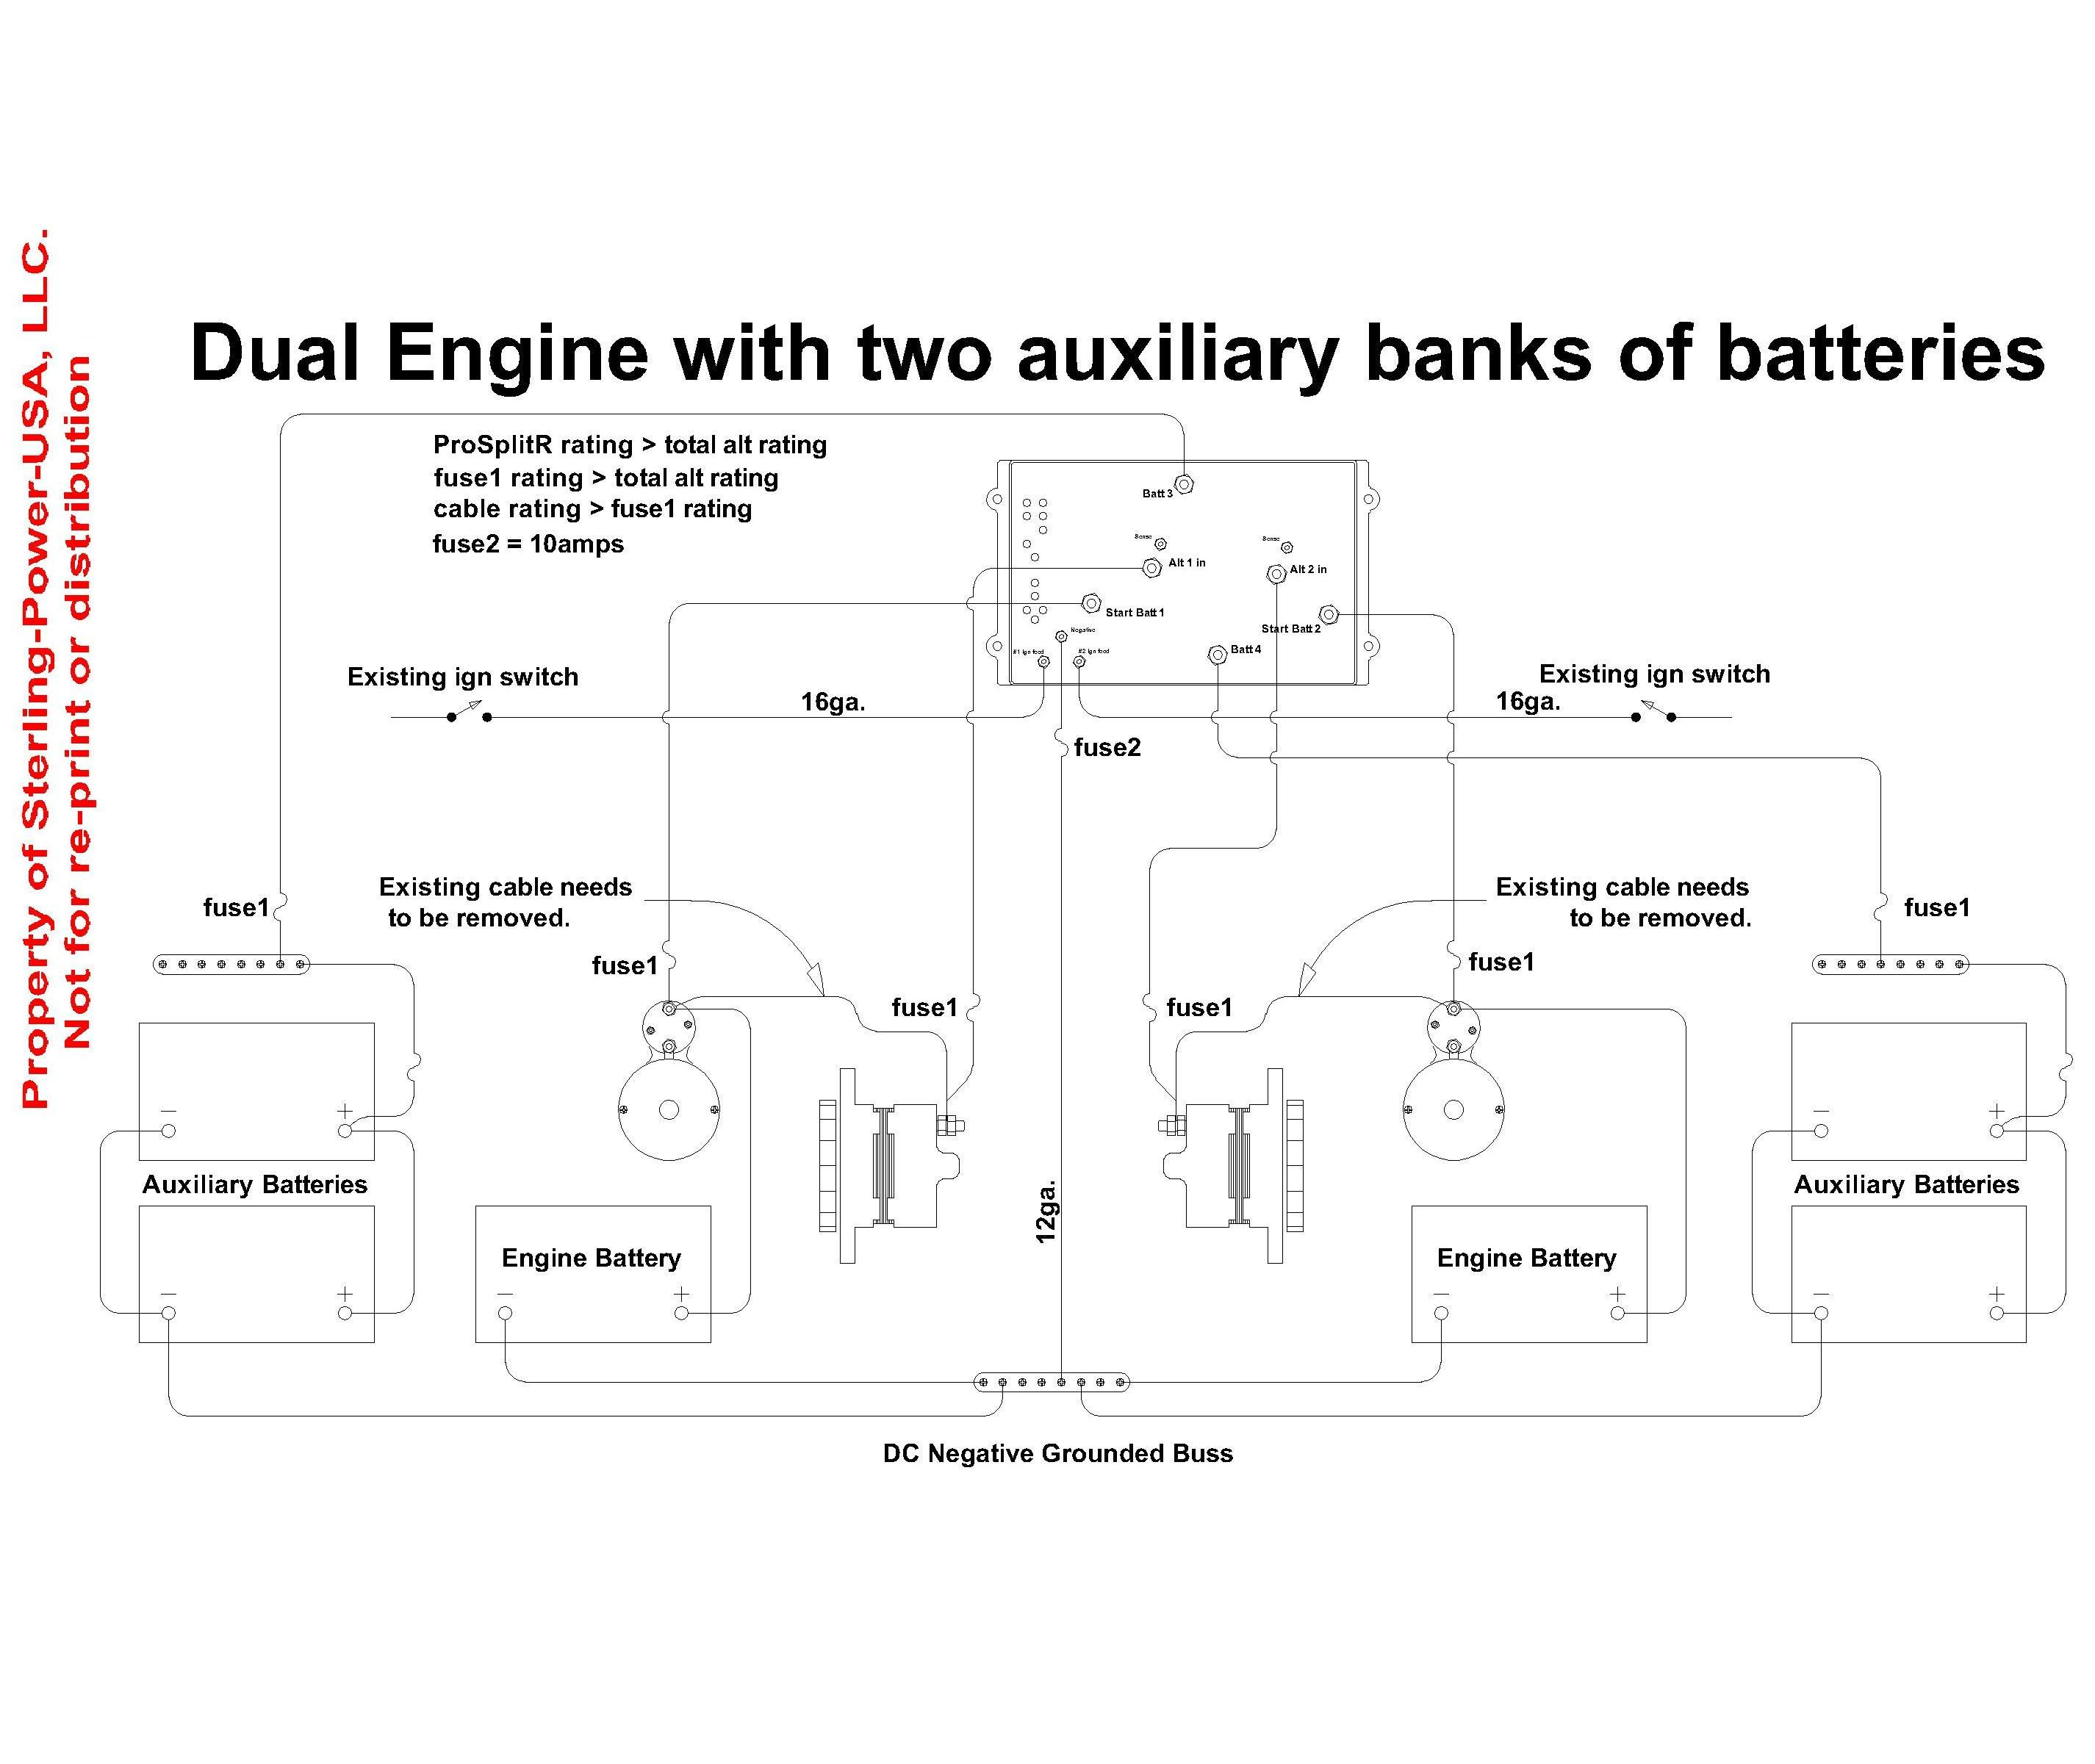 wiring diagrams literature for pro charge ultra marine battery rh sterling power usa com battery charger wiring diagram car battery charger wire diagram pdf